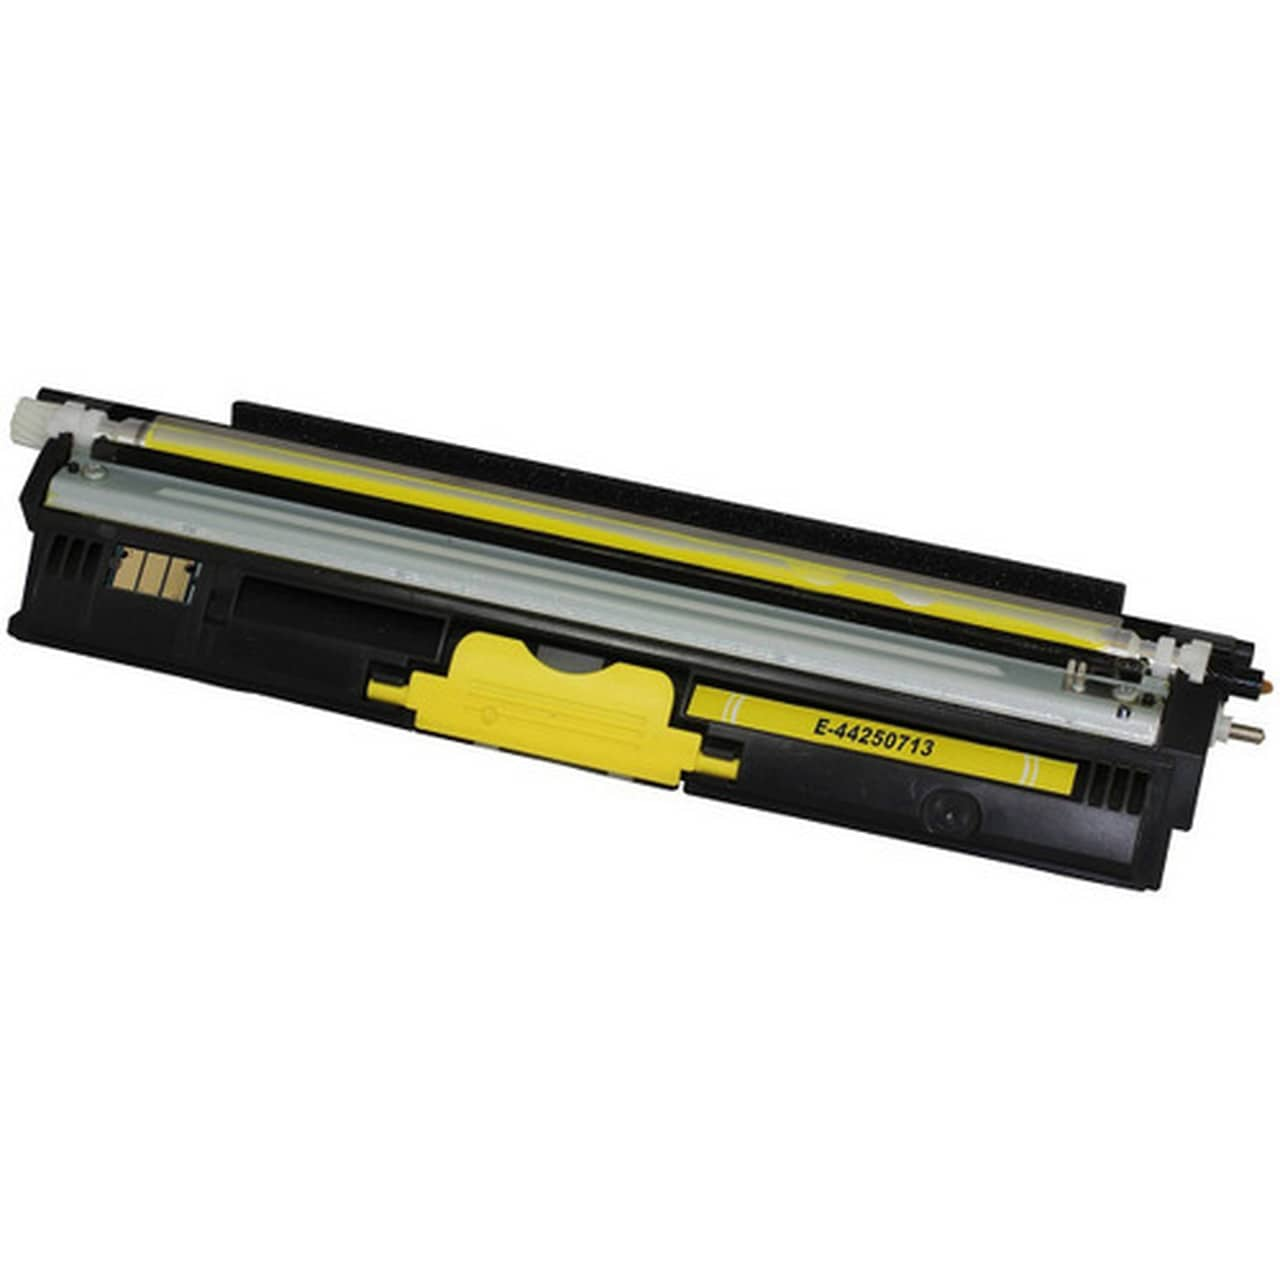 Compatible Okidata 44250713 Yellow Toner Cartridge